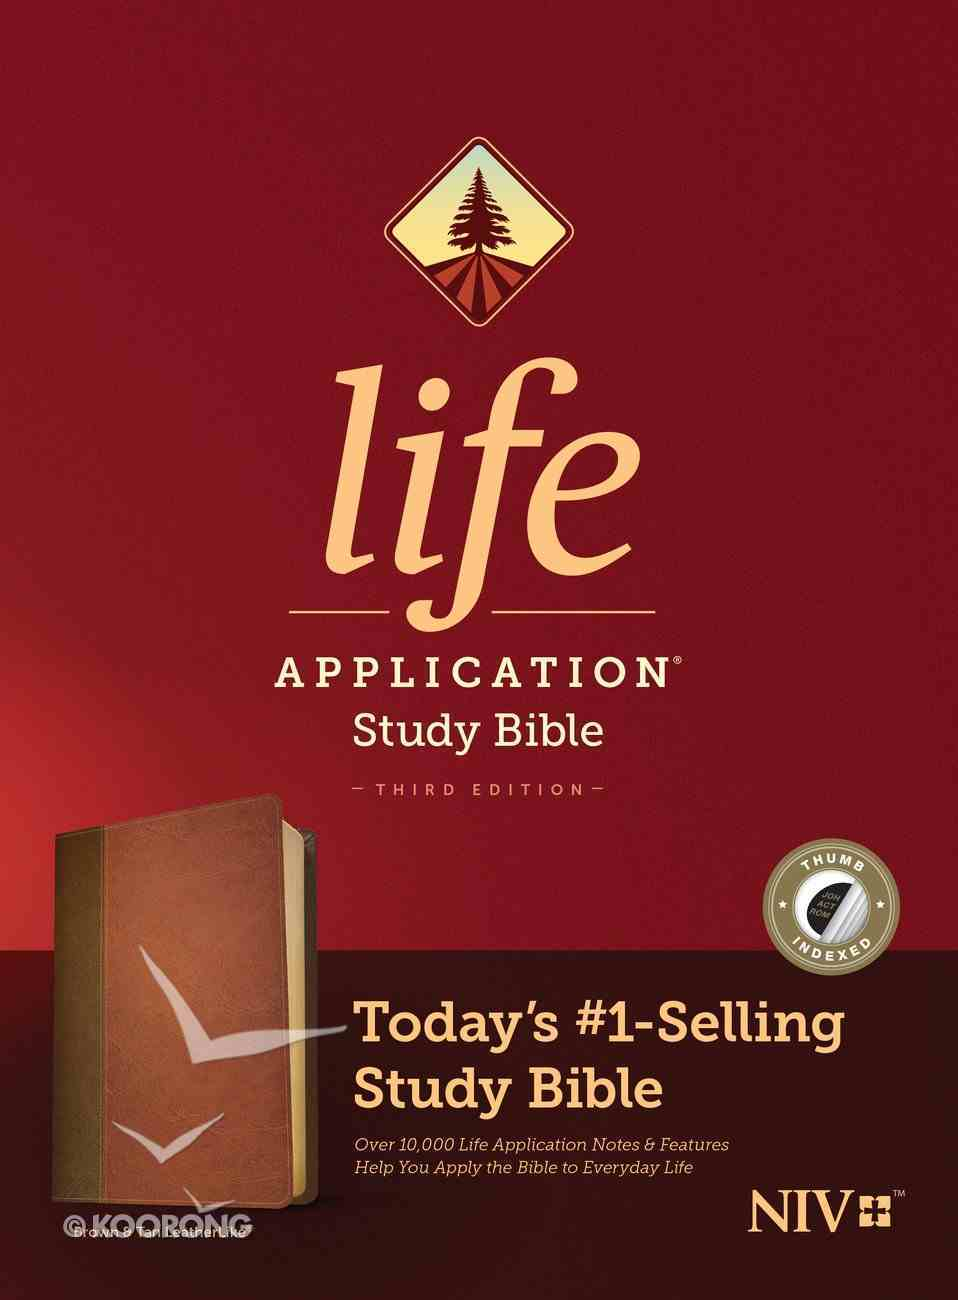 NIV Life Application Study Bible 3rd Edition Brown/Tan Indexed (Black Letter Edition) Imitation Leather